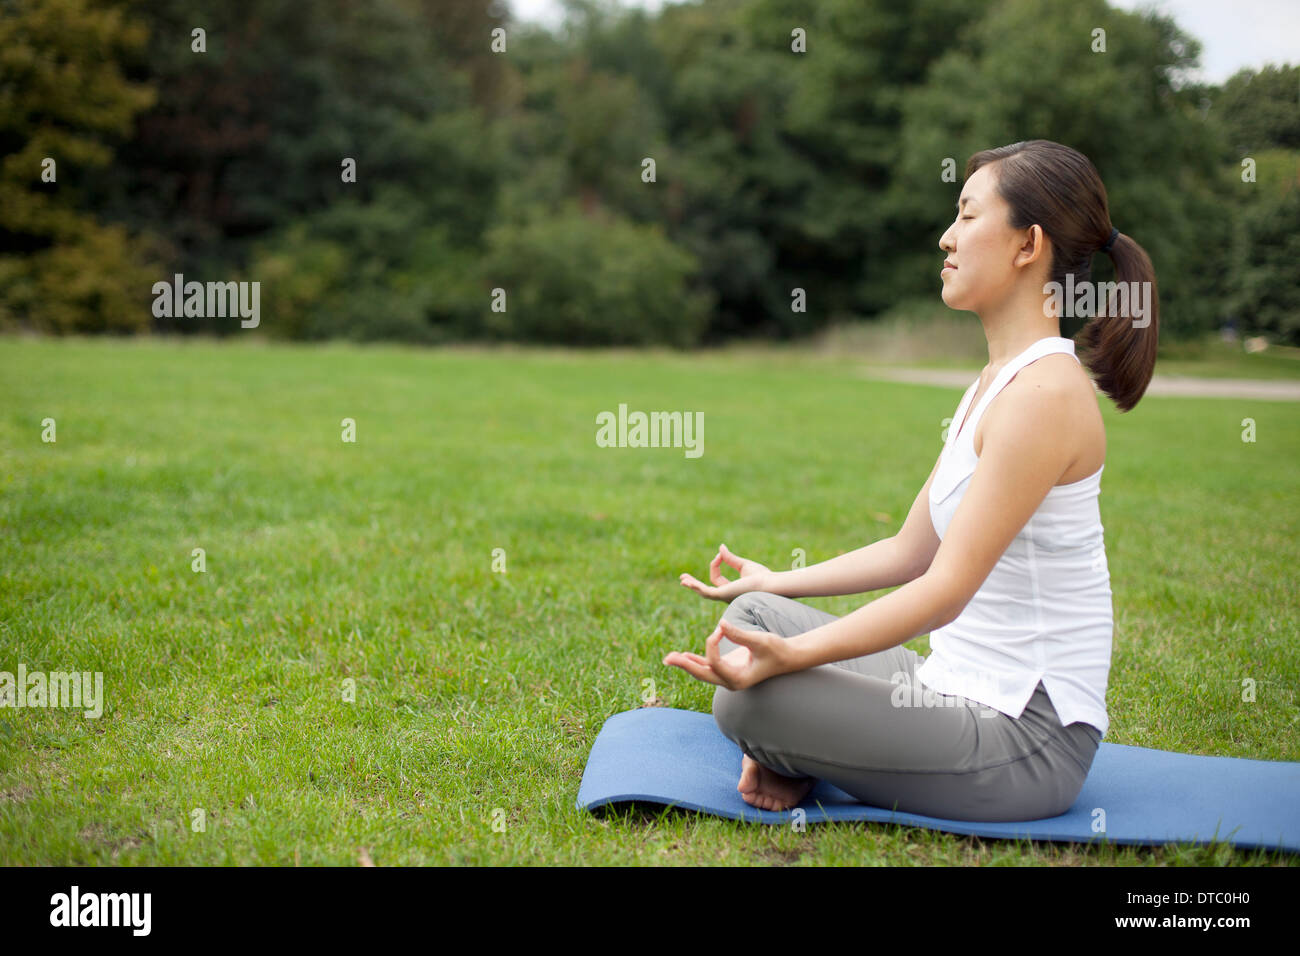 Young woman in park practicing yoga lotus position - Stock Image